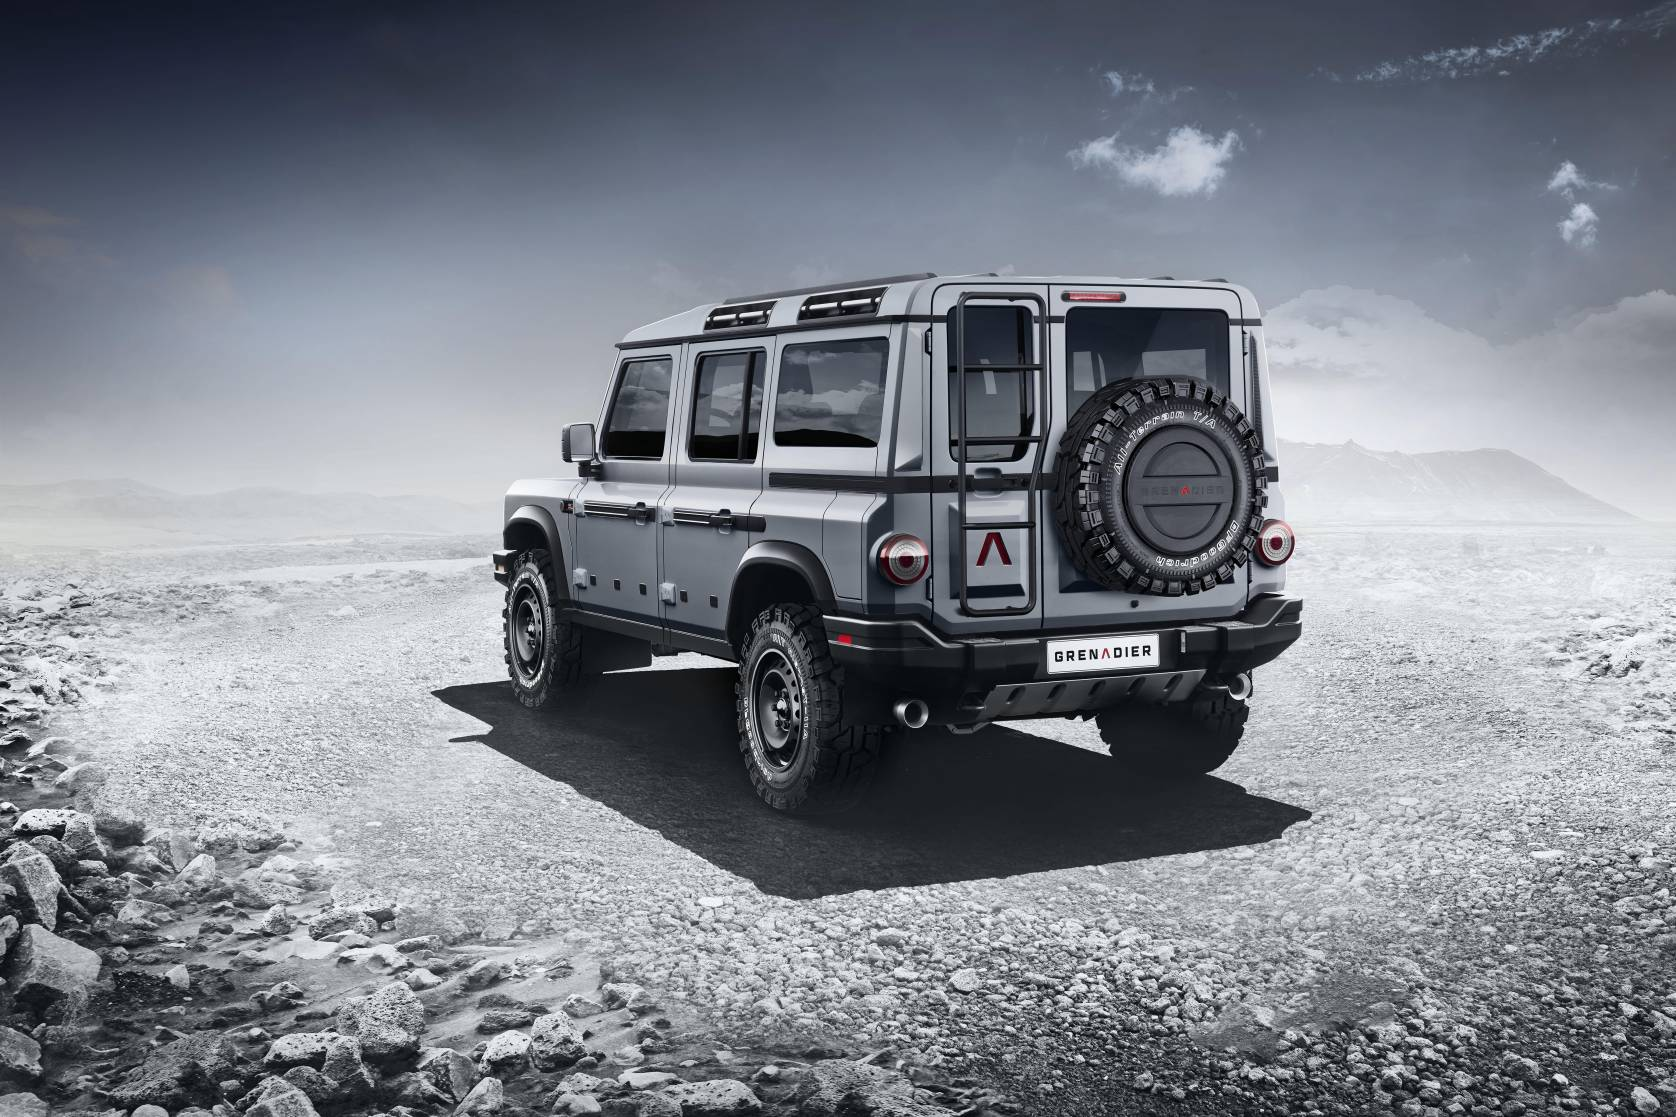 Ineos Grenadier Debuts As A 'Form-Follows-Function' Off-Roader